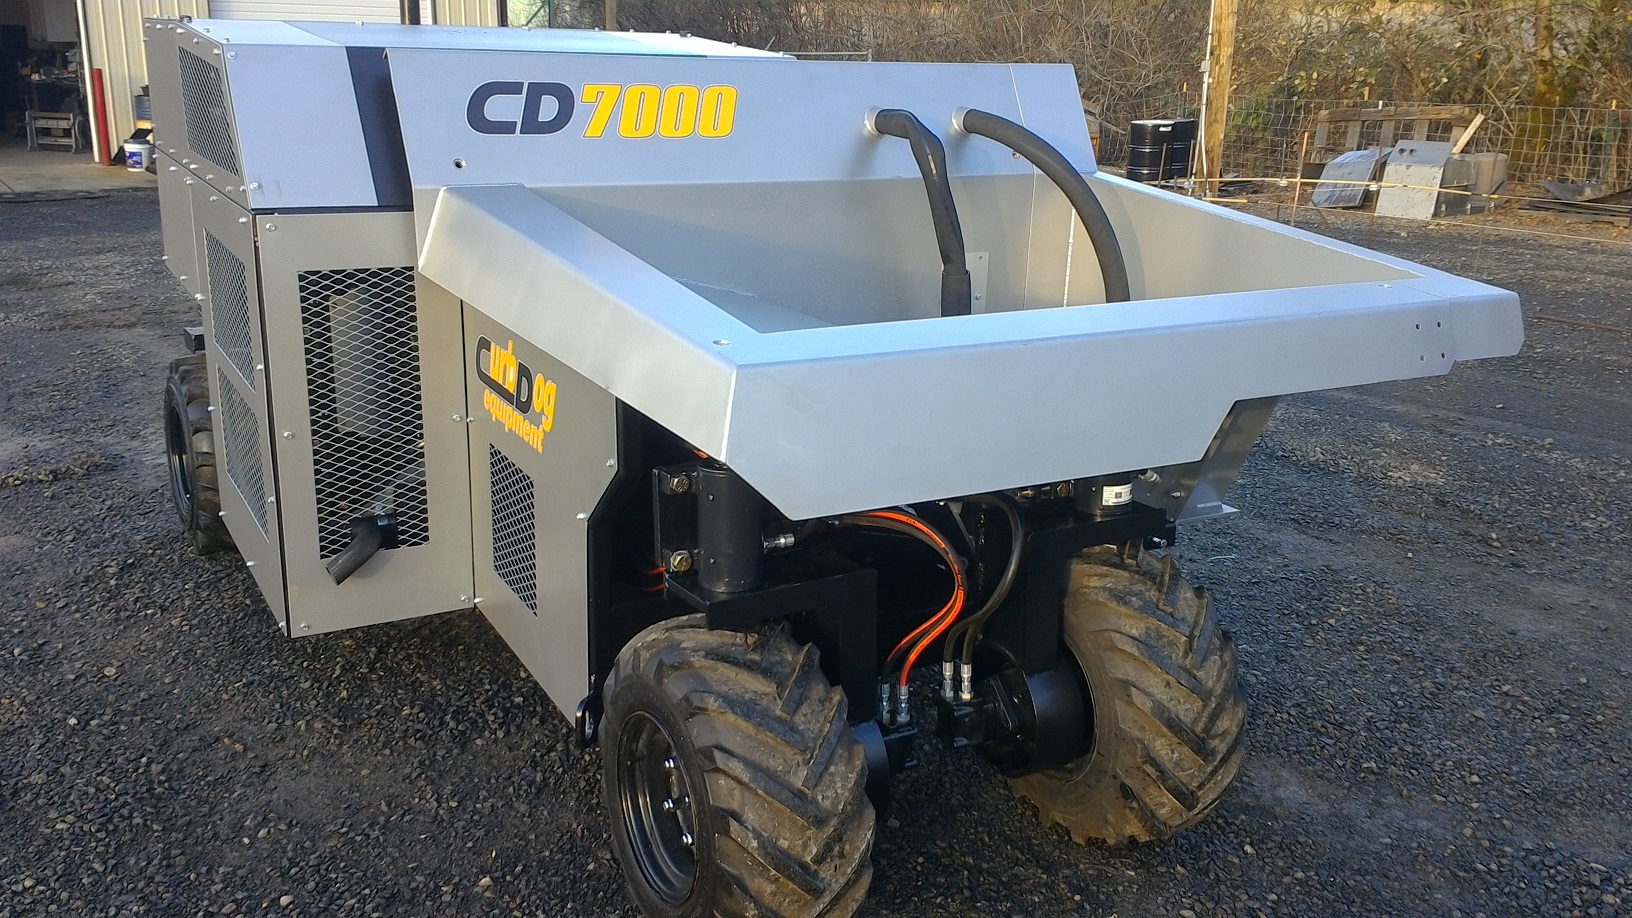 CD7000 front